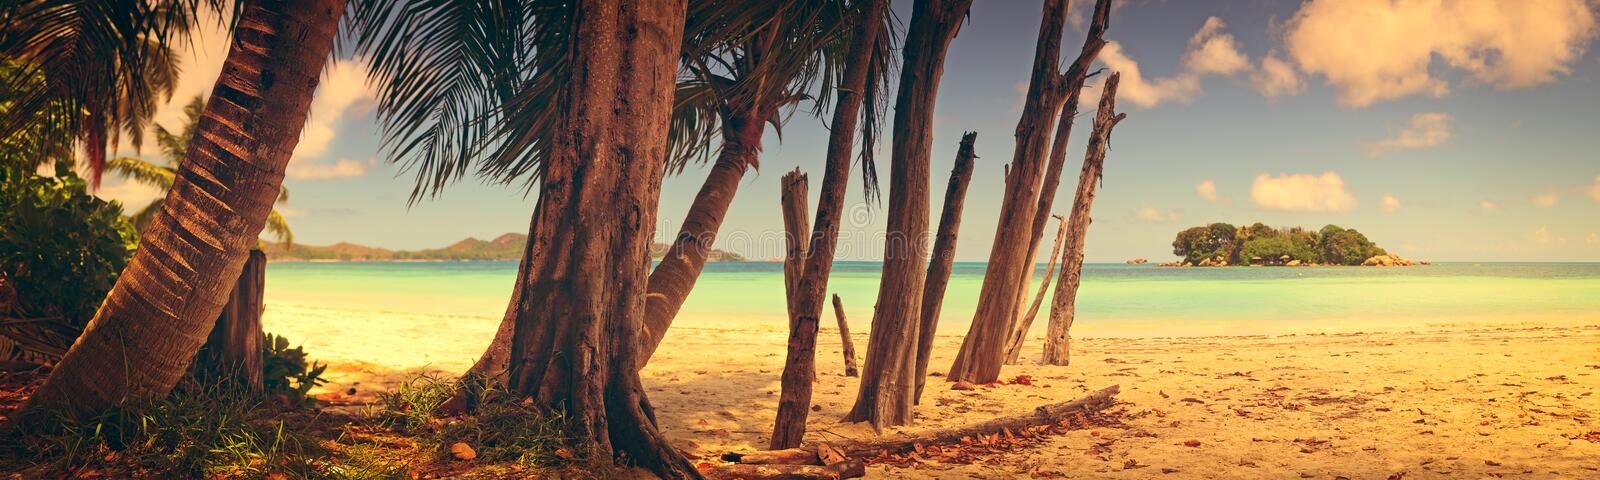 Panoramic view of a tropical beach at dawn. Praslin island, Seychelles, Indian Ocean vintage style stock images